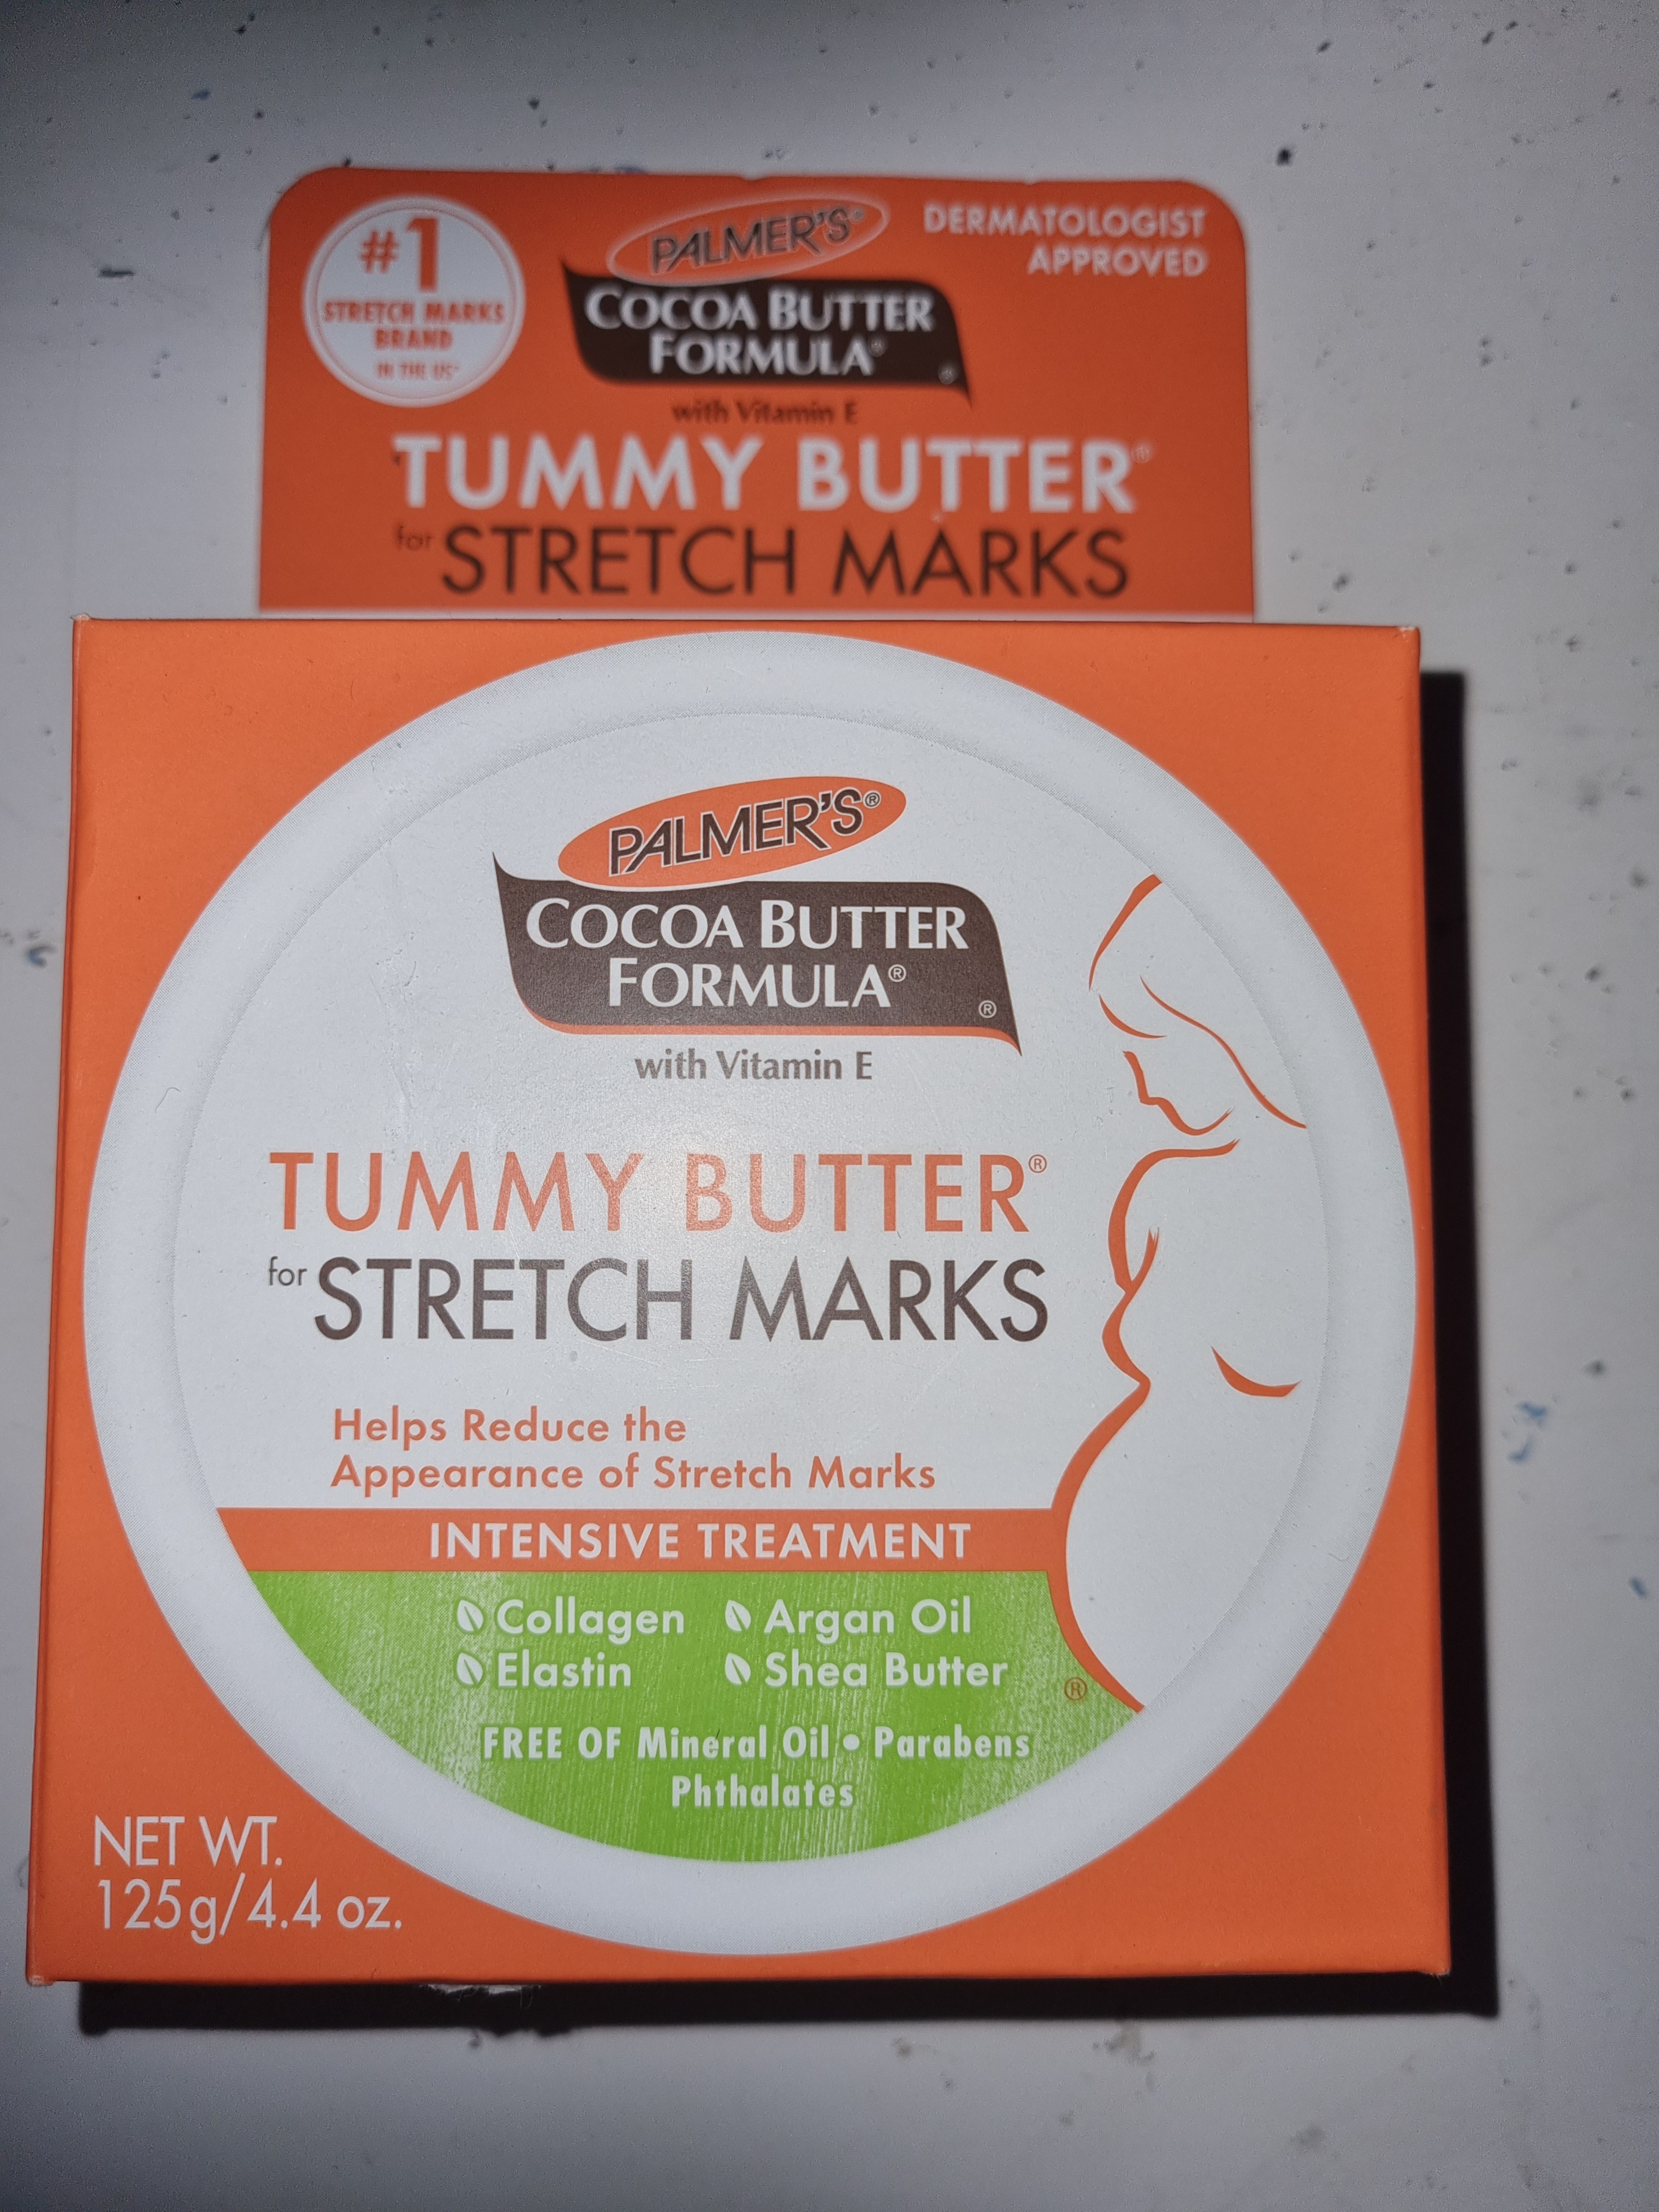 Palmers Cocoa Butter Formula Tummy Butter For Stretch